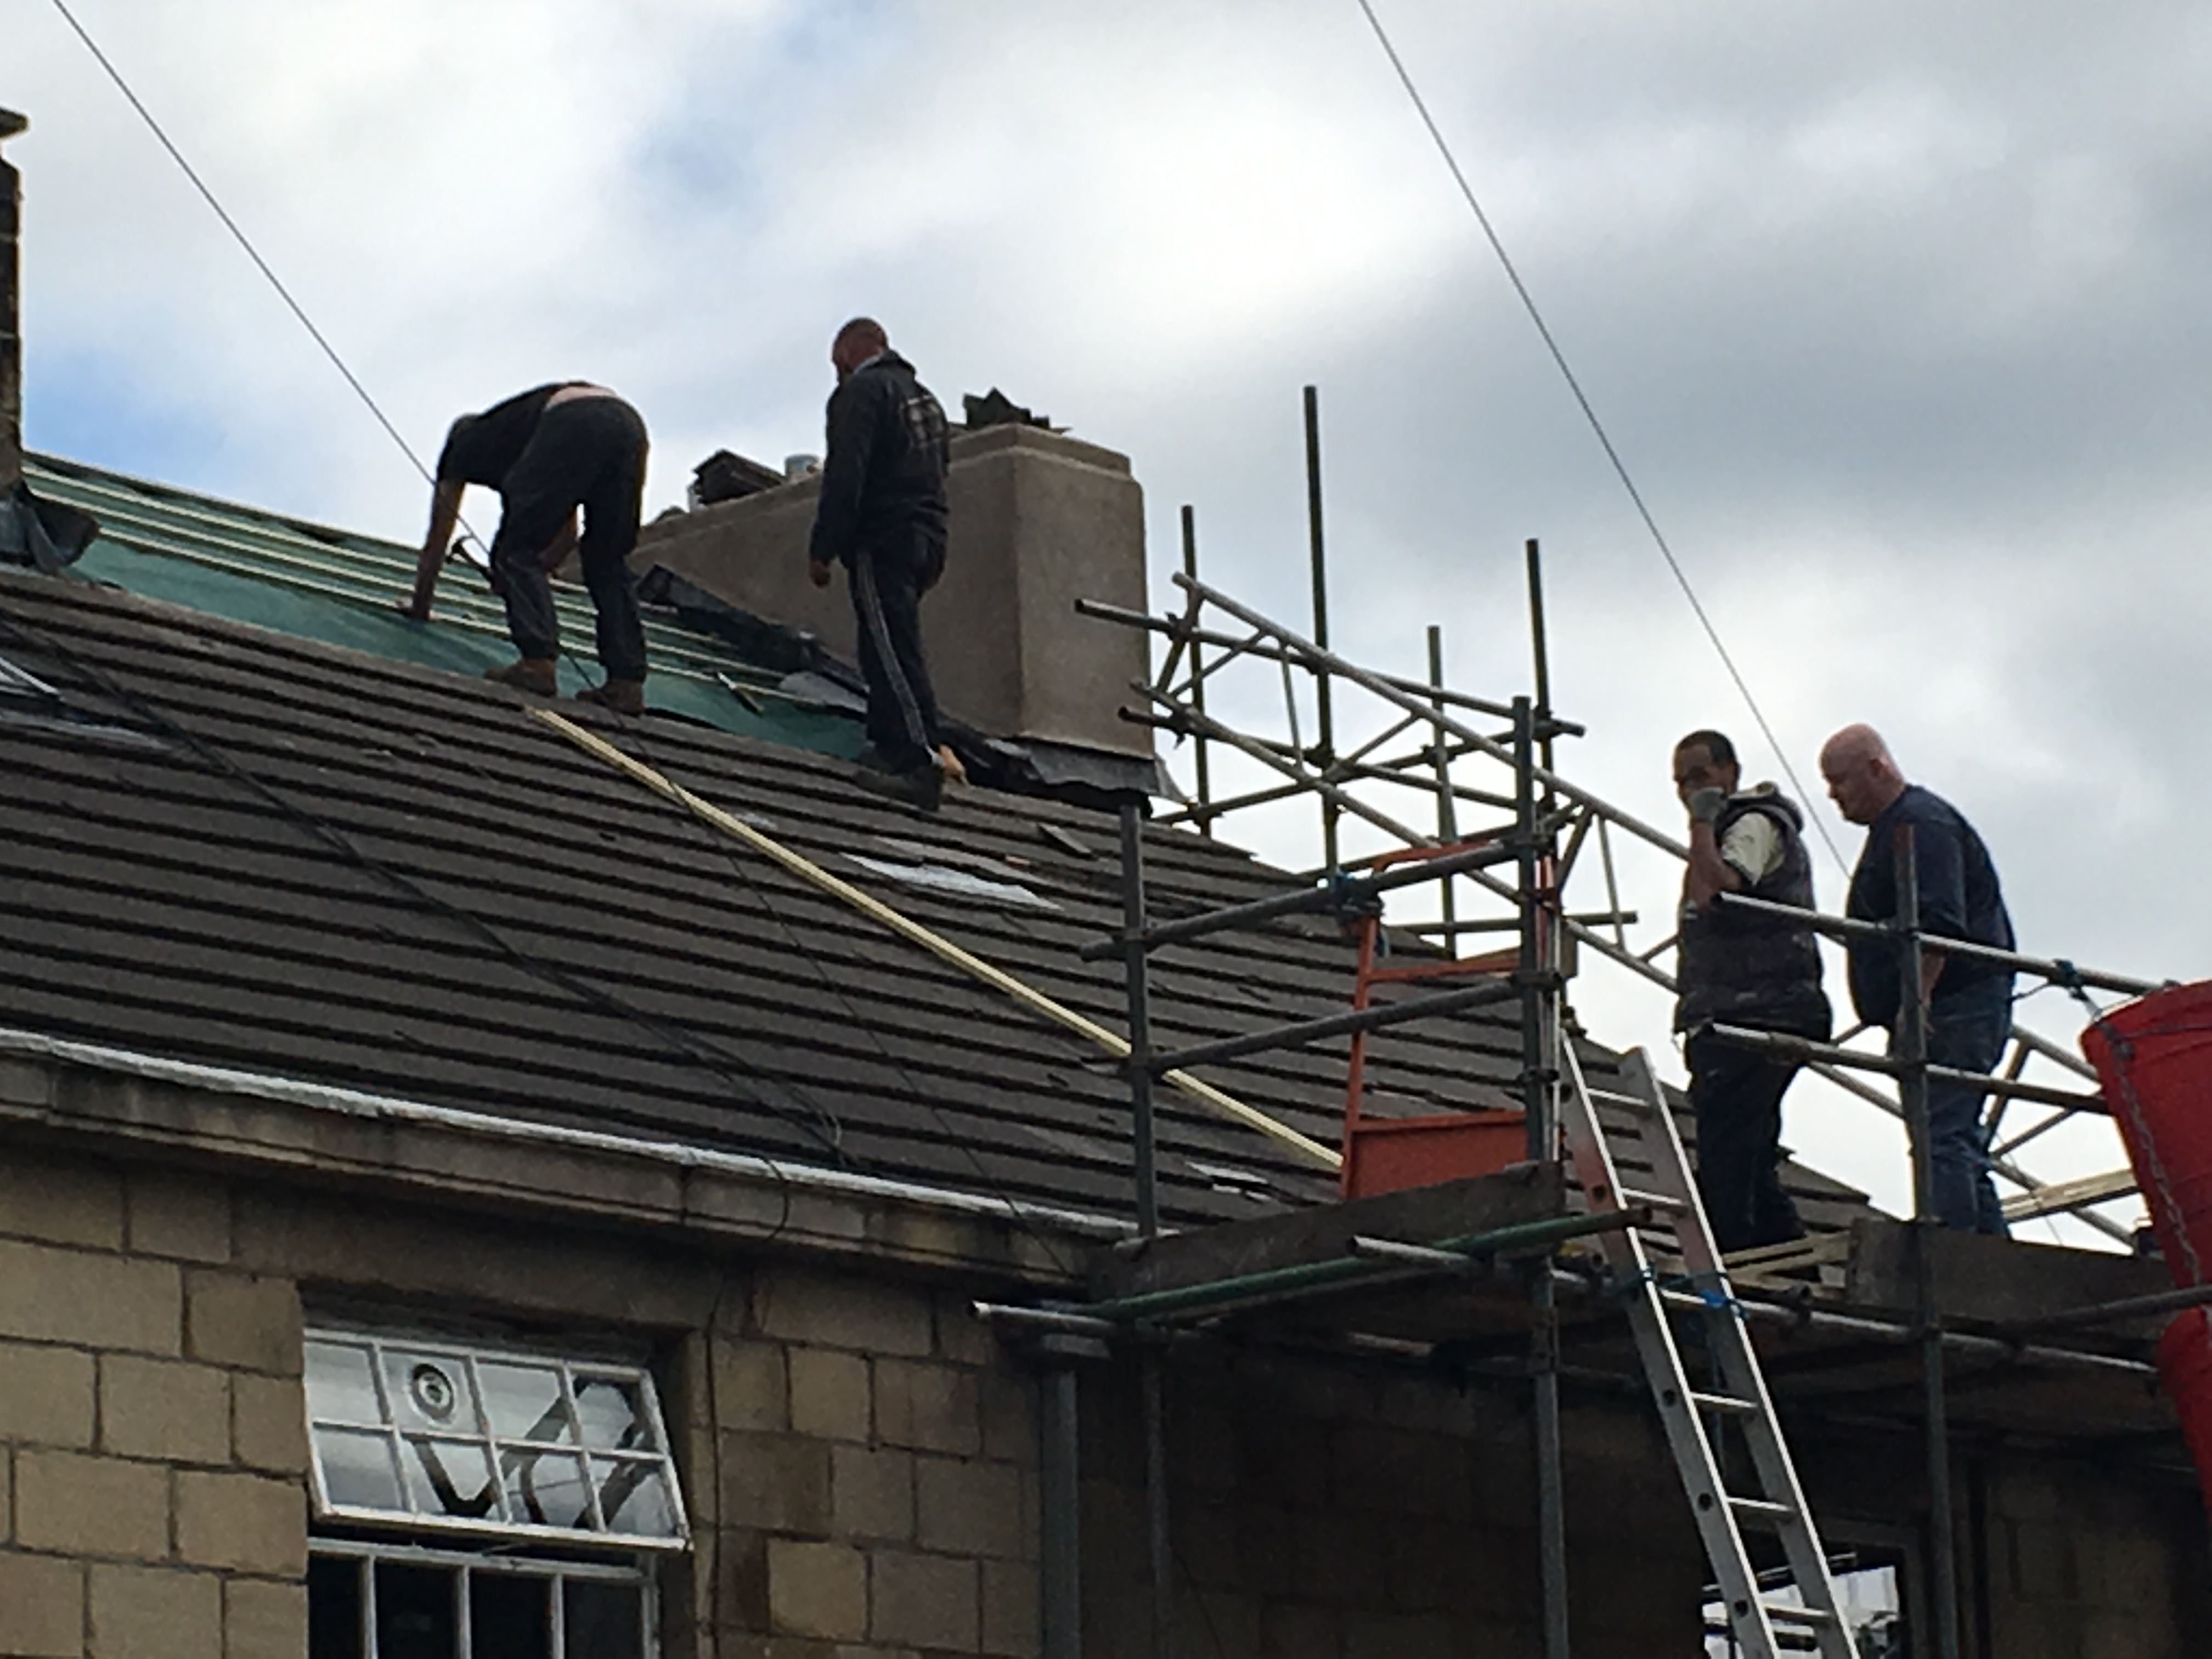 All Round Roofing, Slate Roofing, Tile Roofing Repairs Burnley | Manchester Road Works, Burnley BB11 2QG | +44 1282 425131